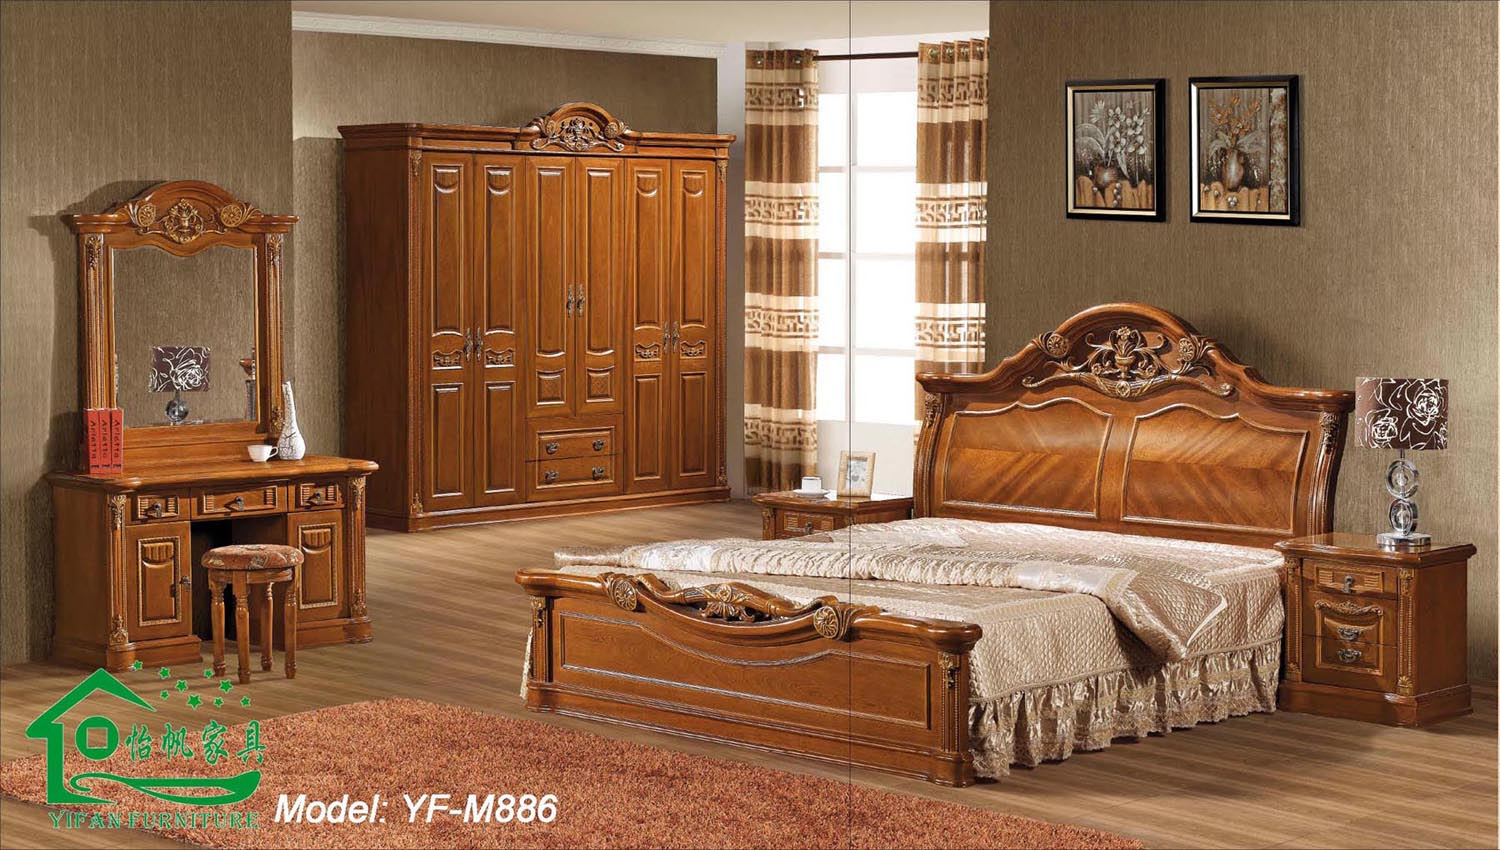 wood bedroom furniture design 2017 suitable with wood bedroom furniture plans suitable with wood bedroom furniture with storage